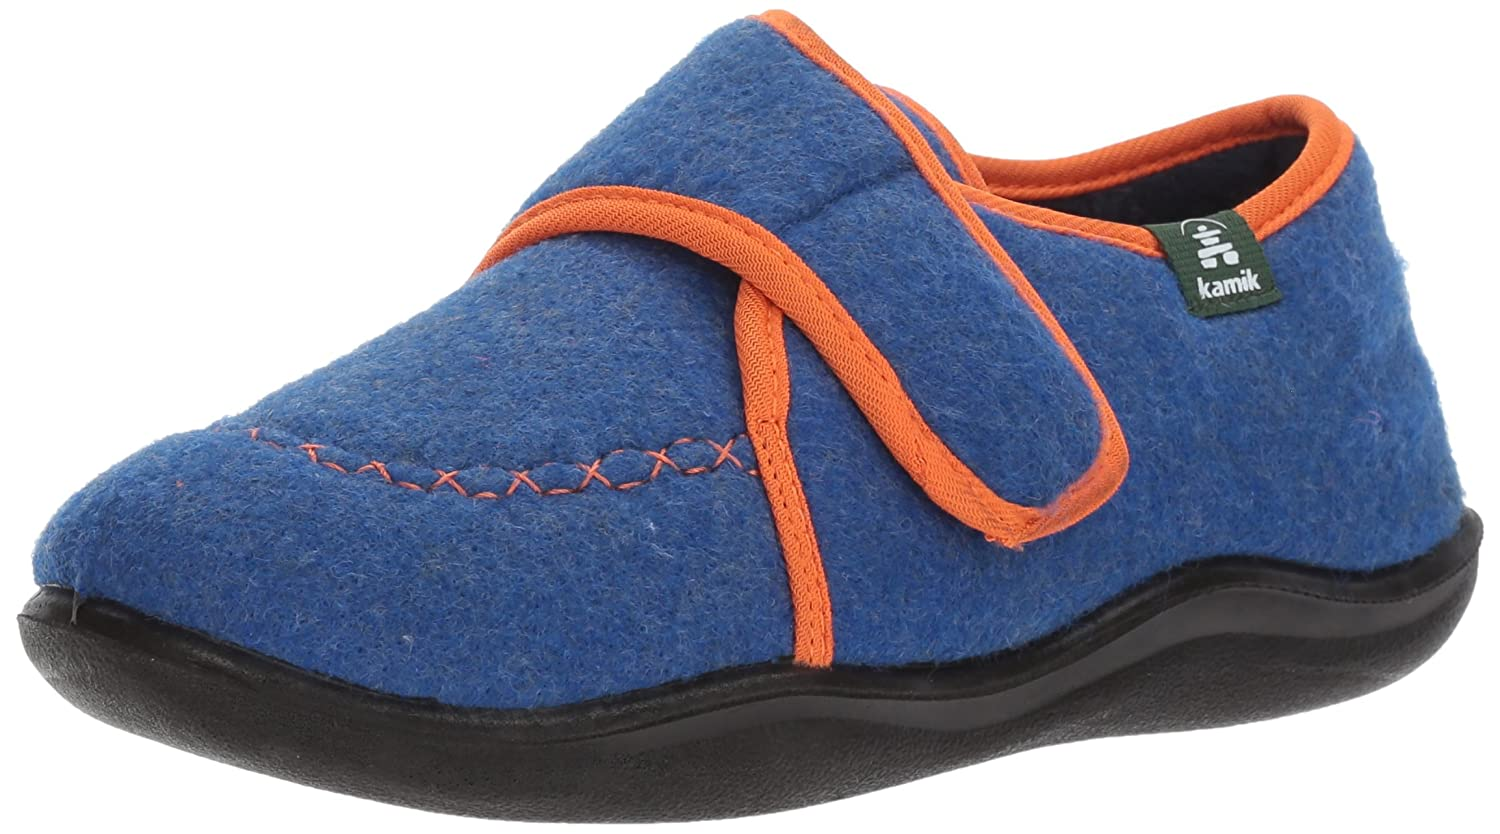 Kamik Kids' Cozylodge Slipper -